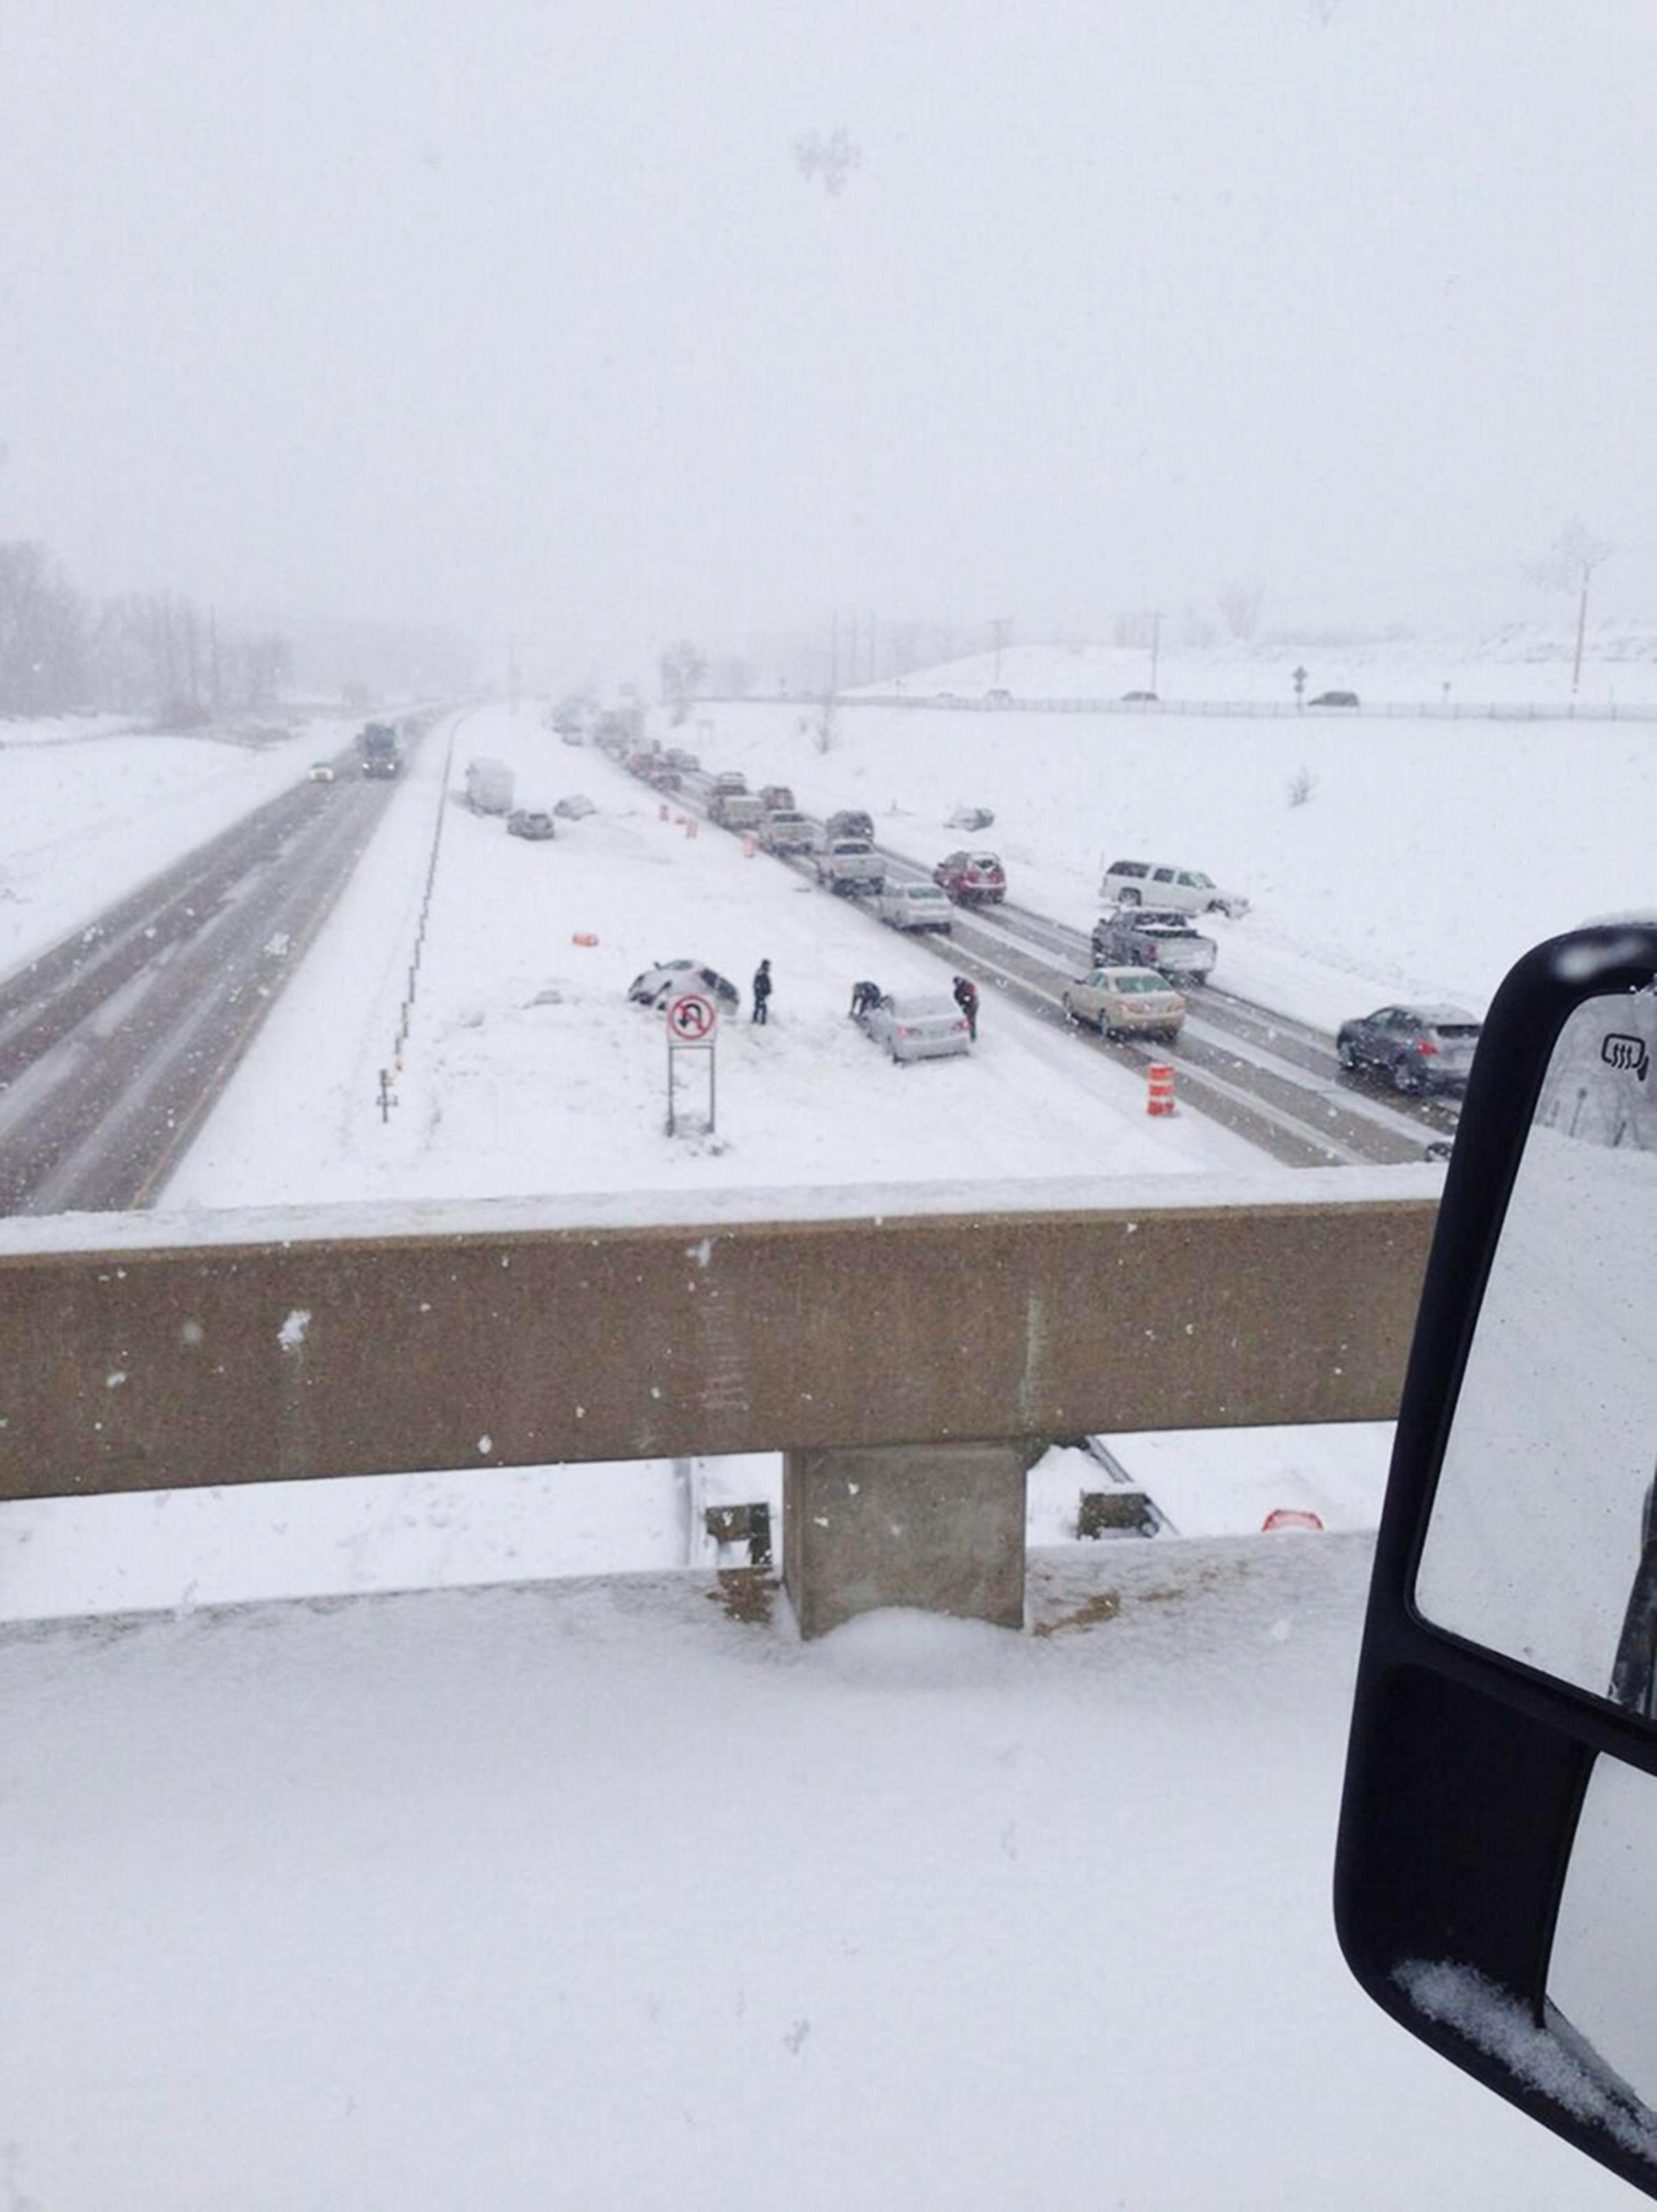 Image: Cars along a snowy highway after multiple crashes caused a lane closure on a Minnesota highway